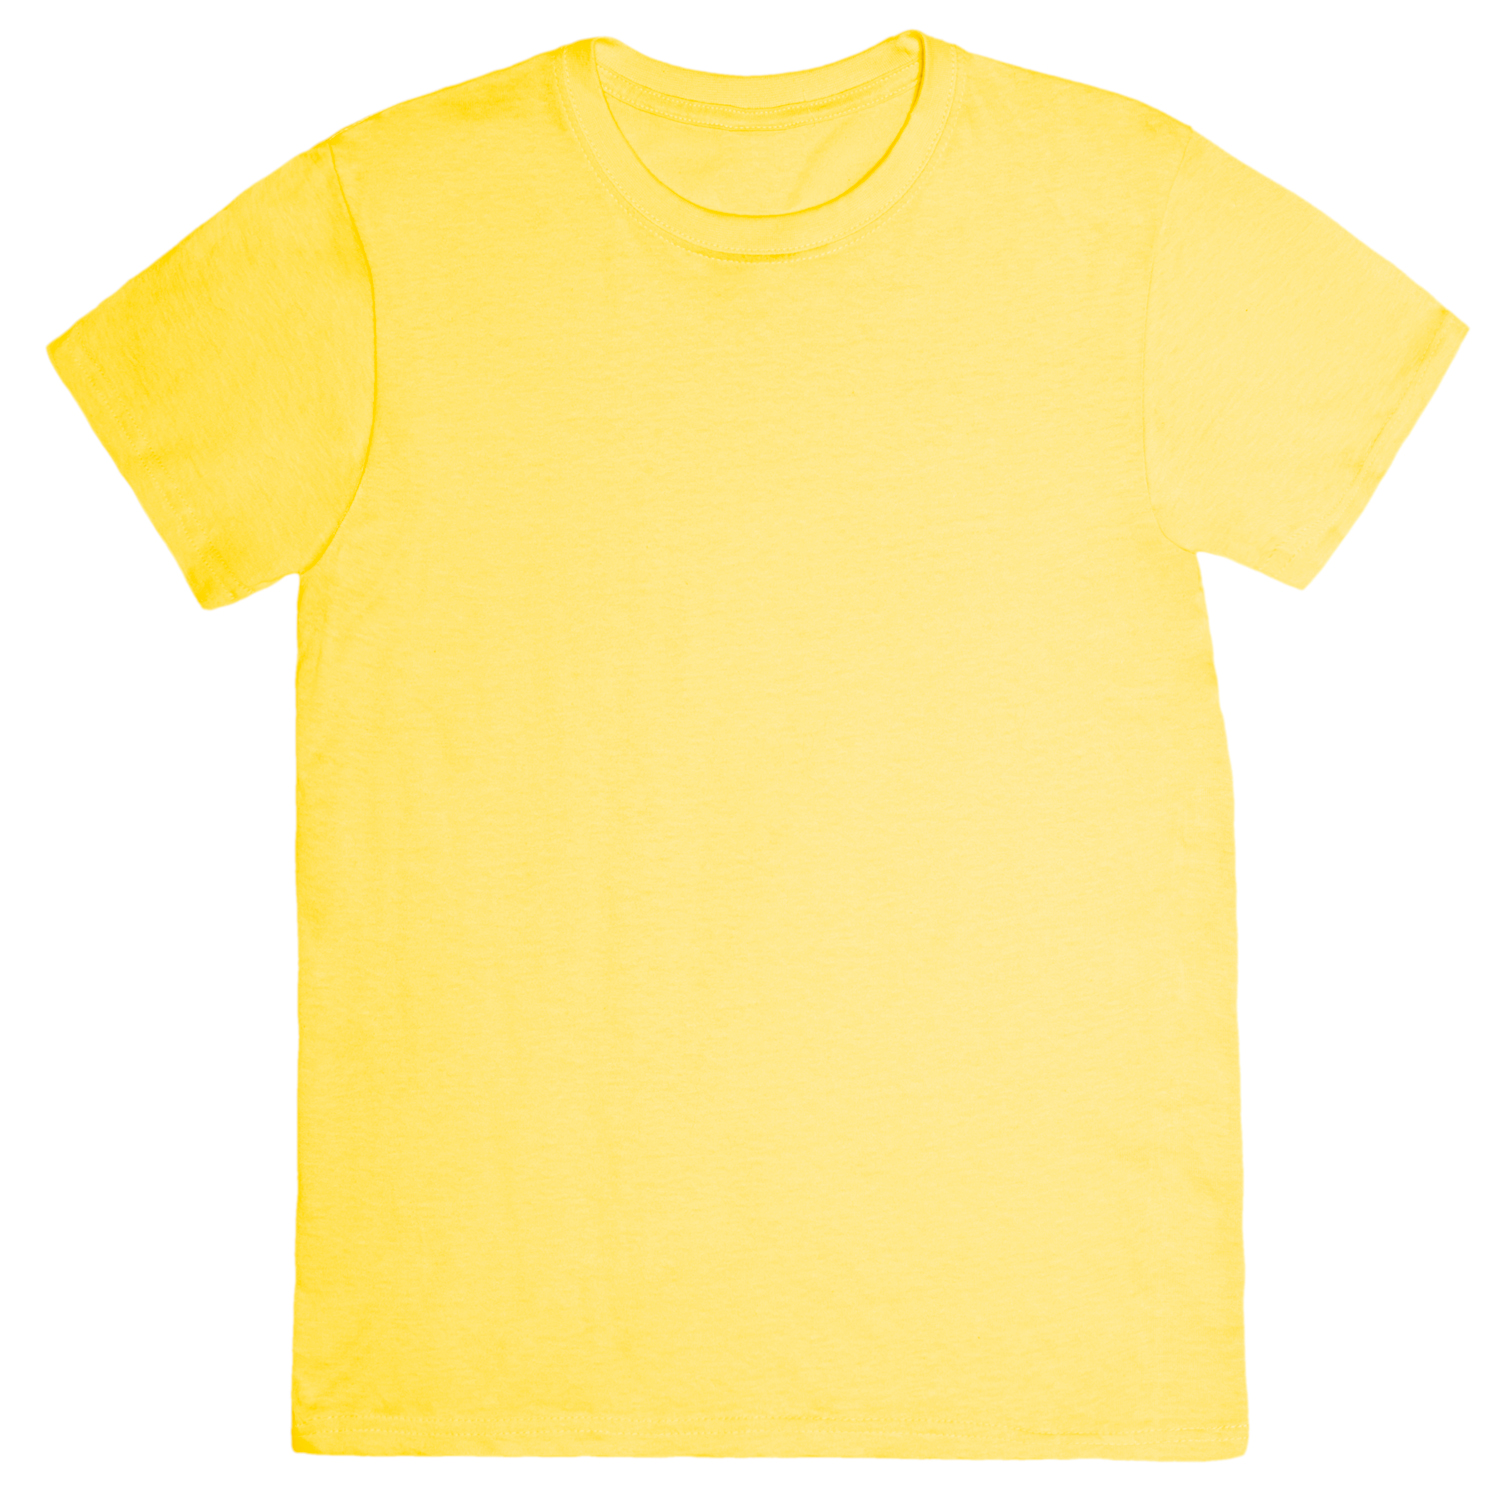 Pale Yellow – PMS 393 C *Available in MC150 only